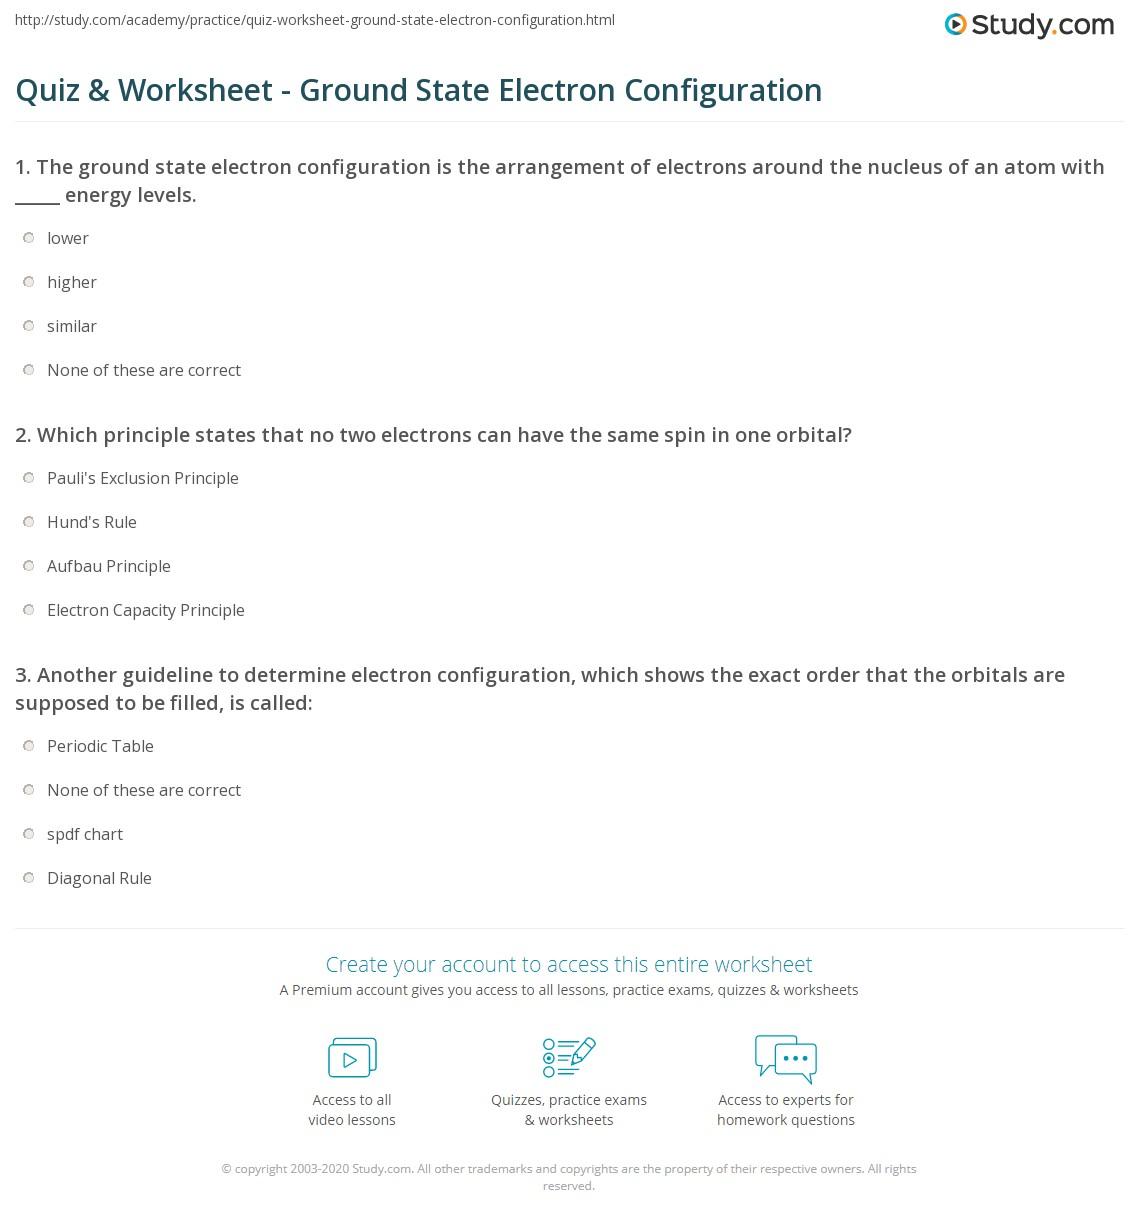 Quiz & Worksheet - Ground State Electron Configuration | Study.com